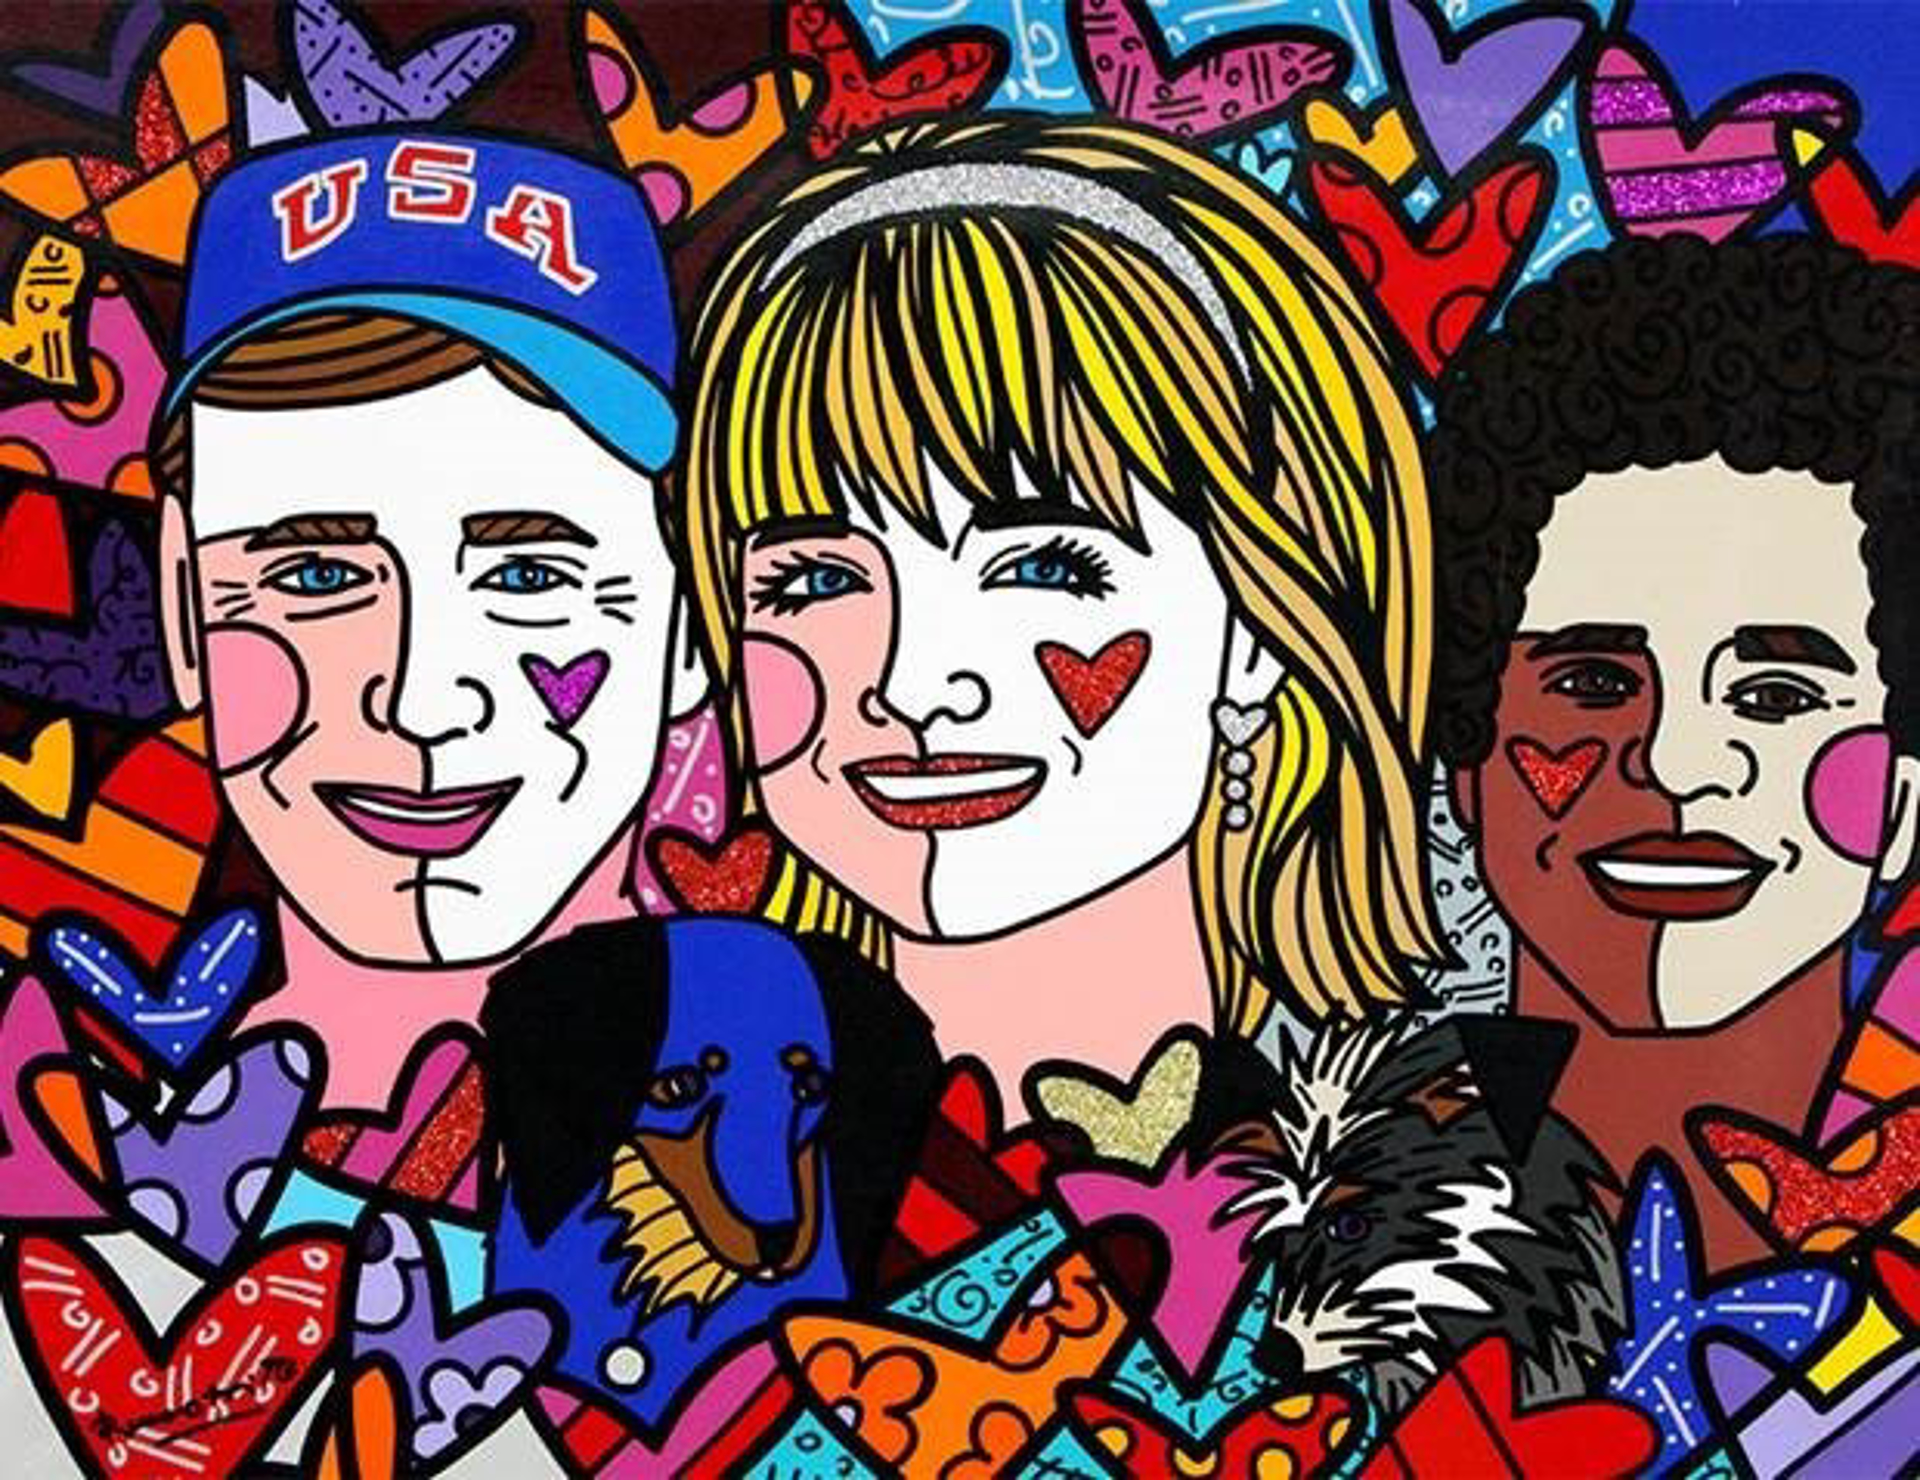 Commissions Available by Romero Britto